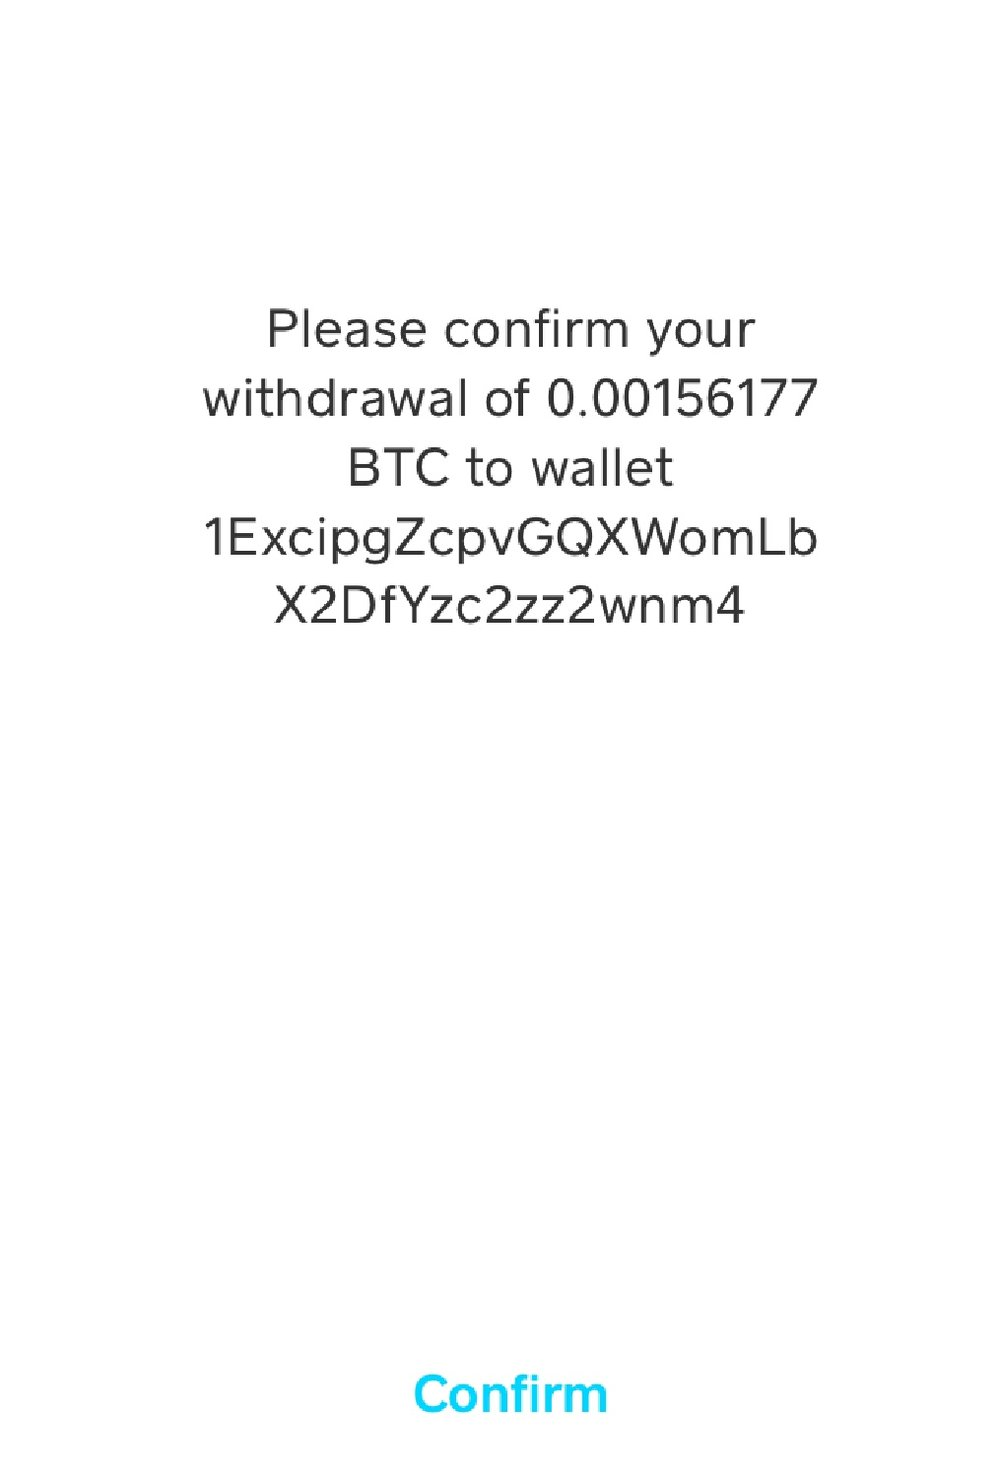 13. Confirm Withdrawal